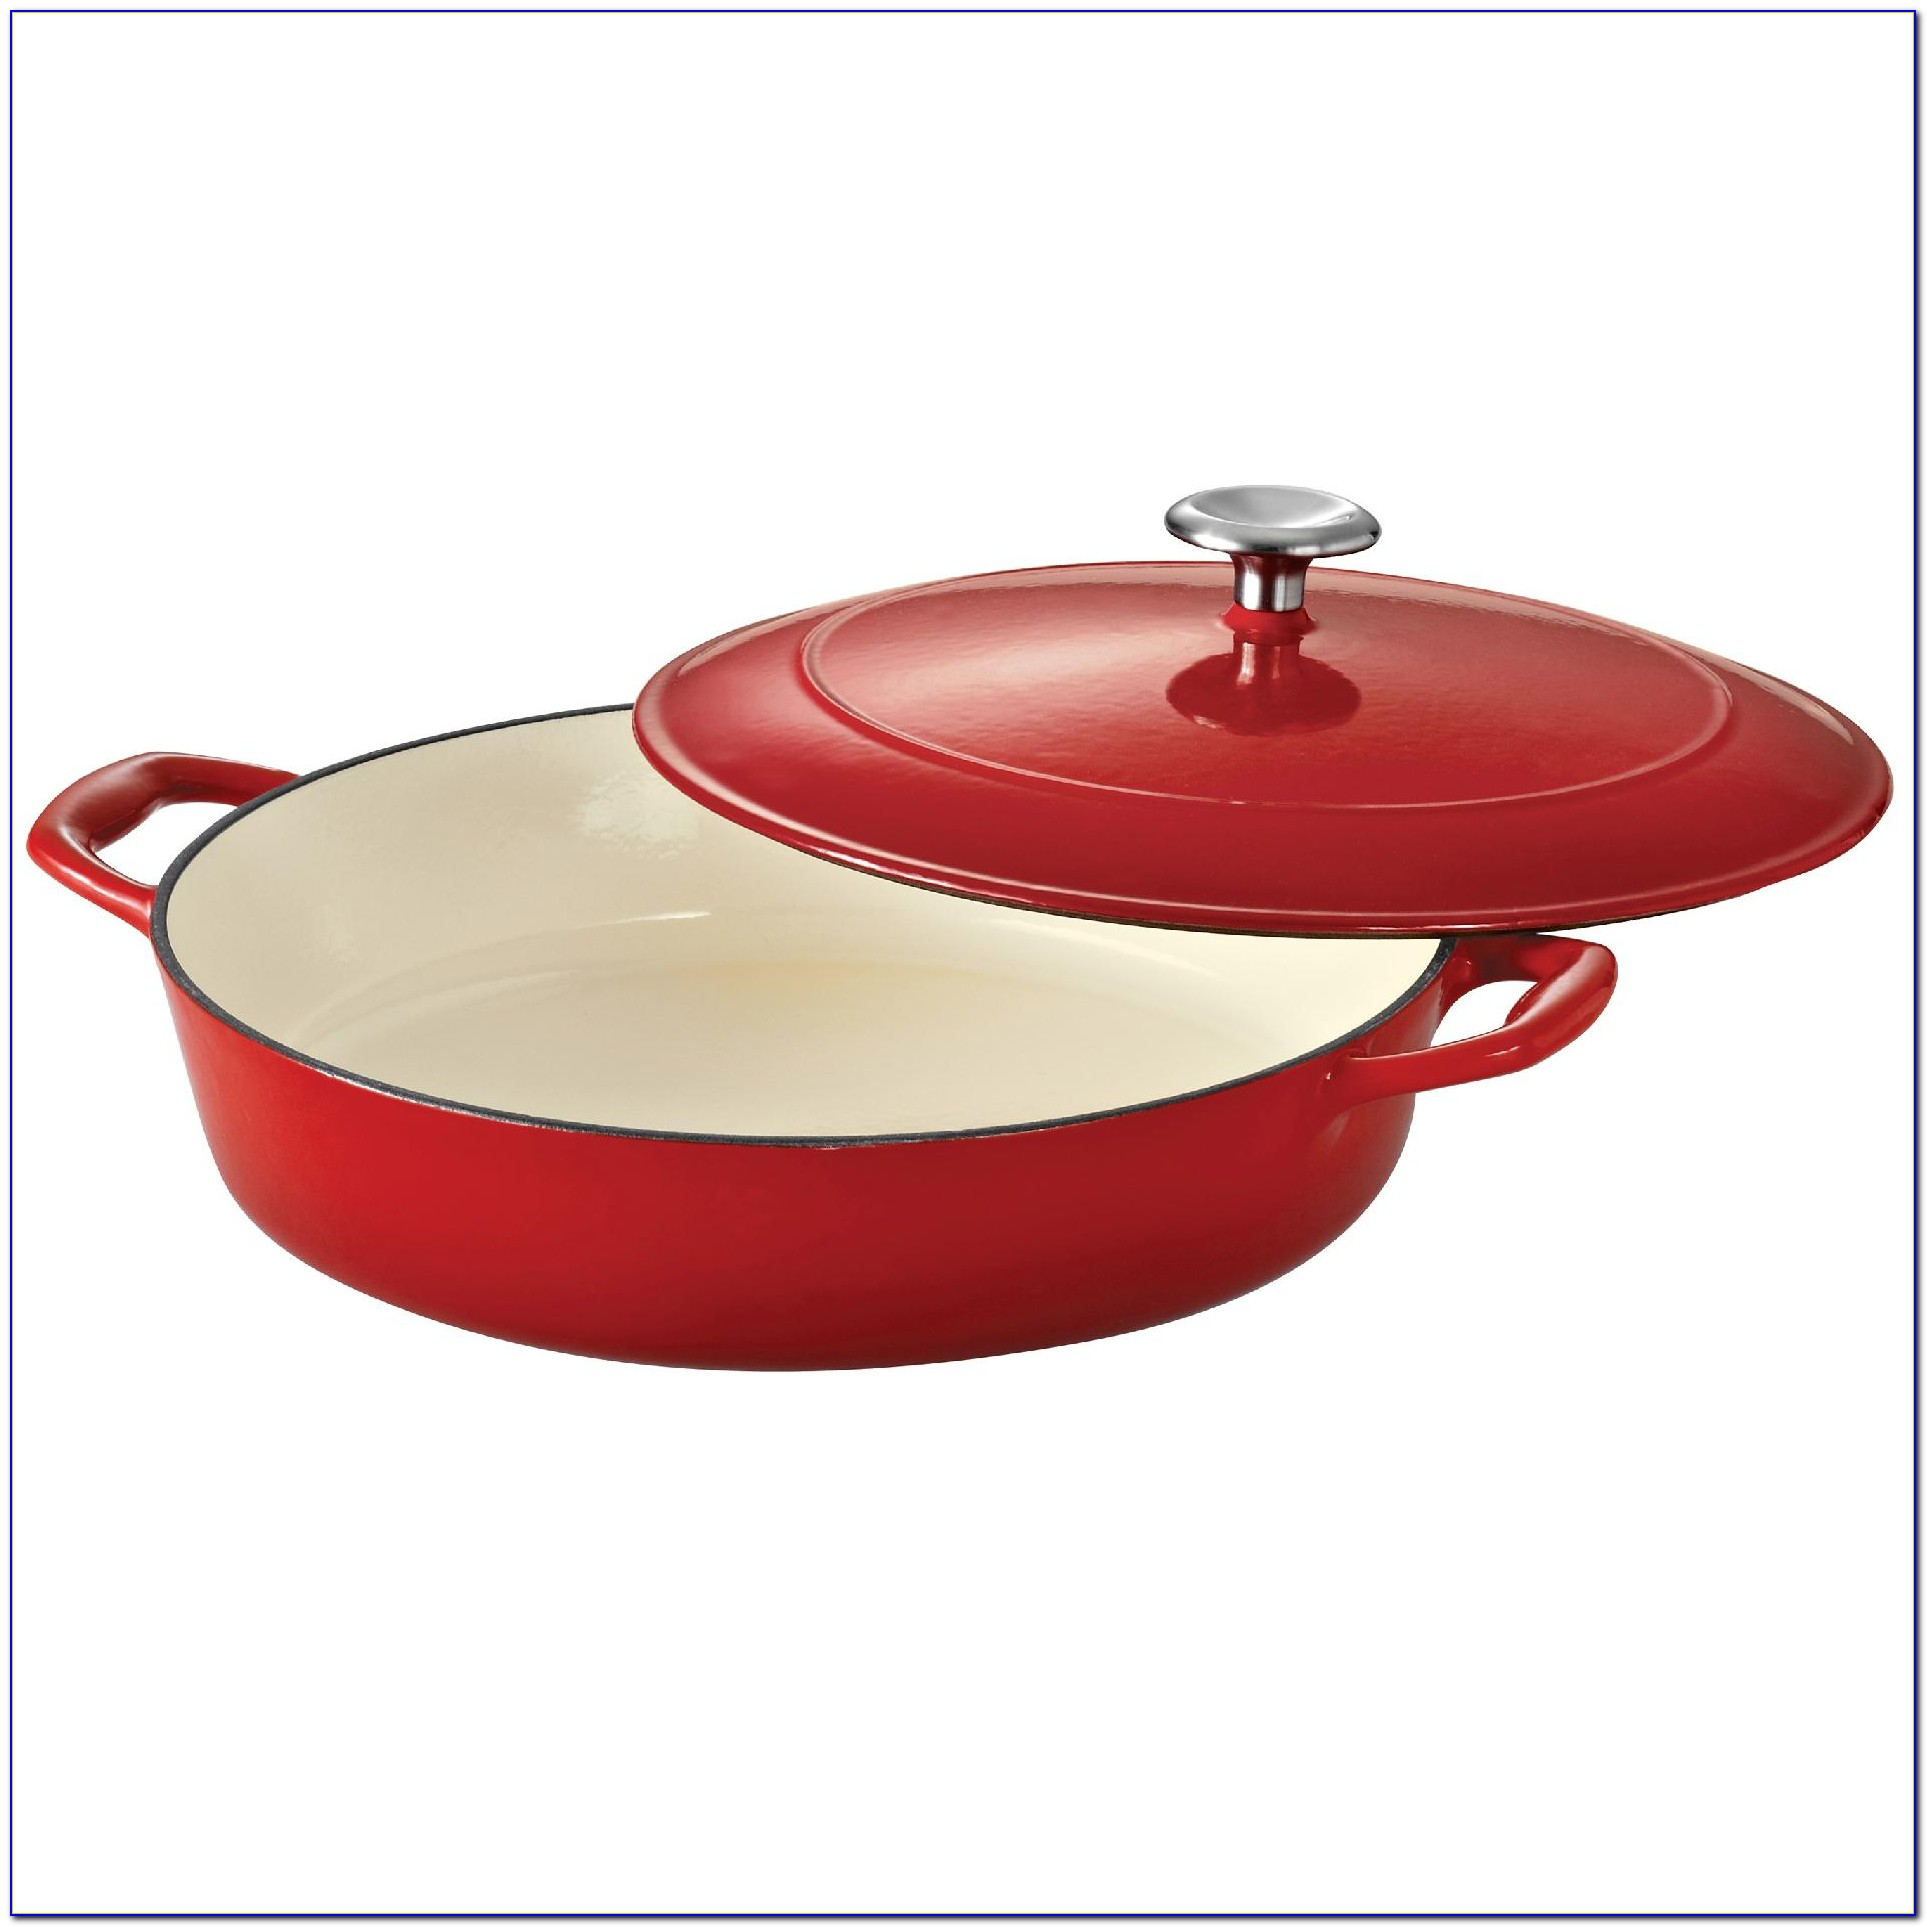 Tabletops Unlimited Vitroceramic Cookware